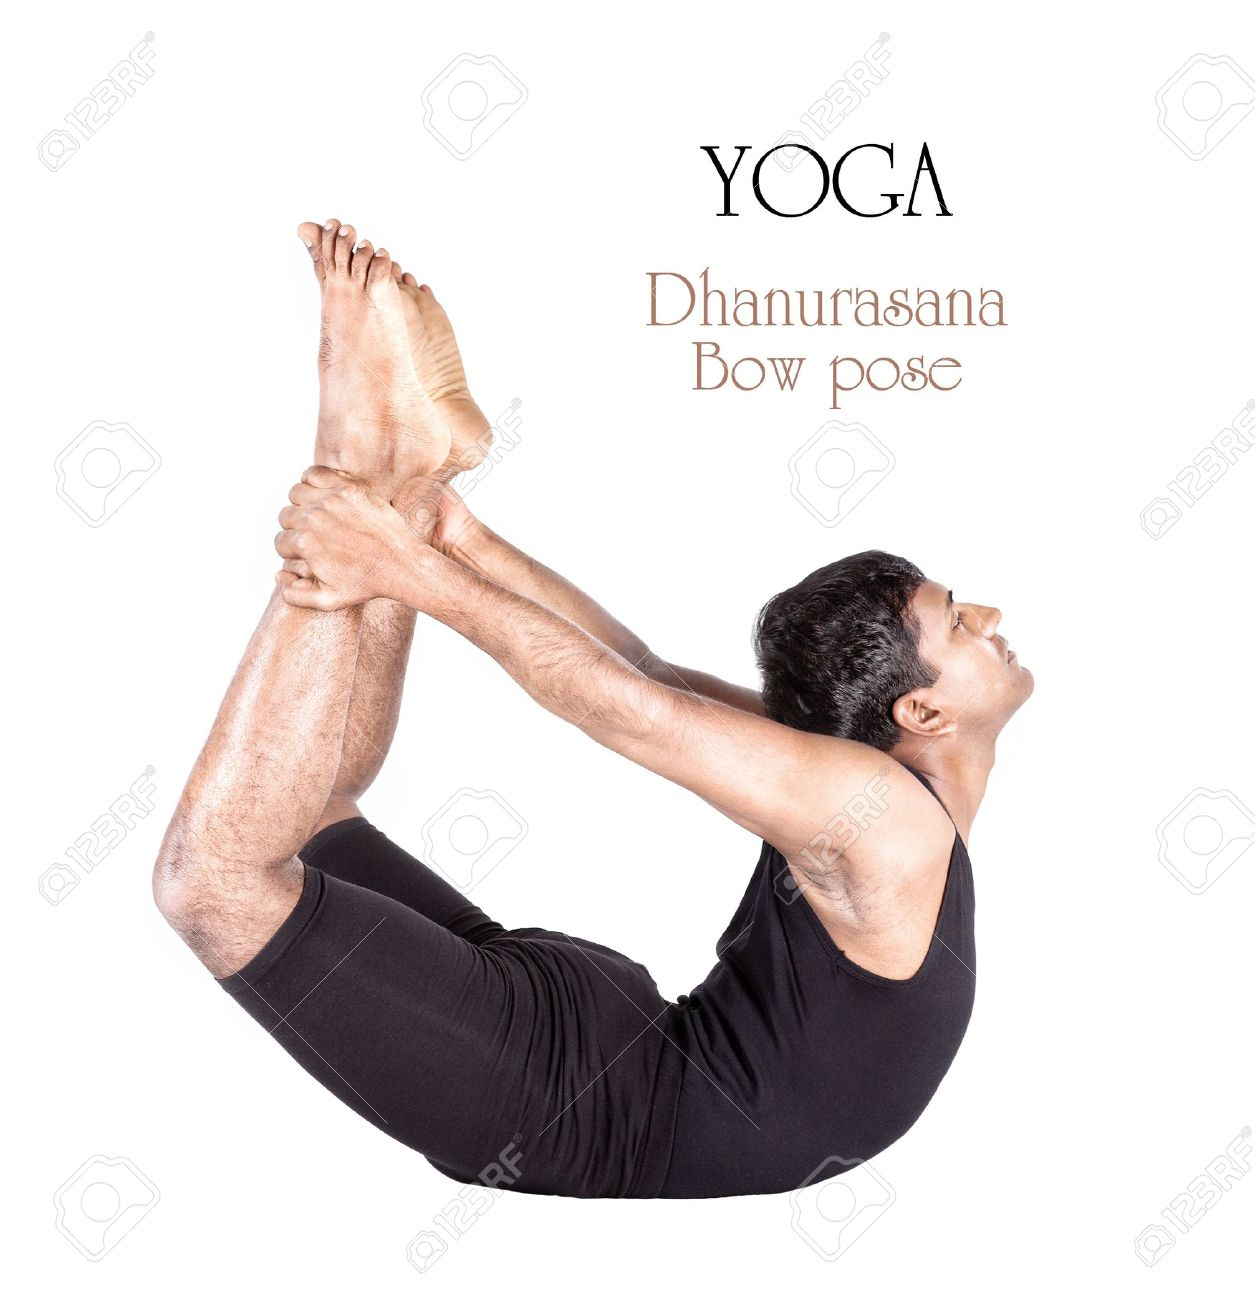 Yoga dhanurasana bow pose by Indian man in black cloth isolated..